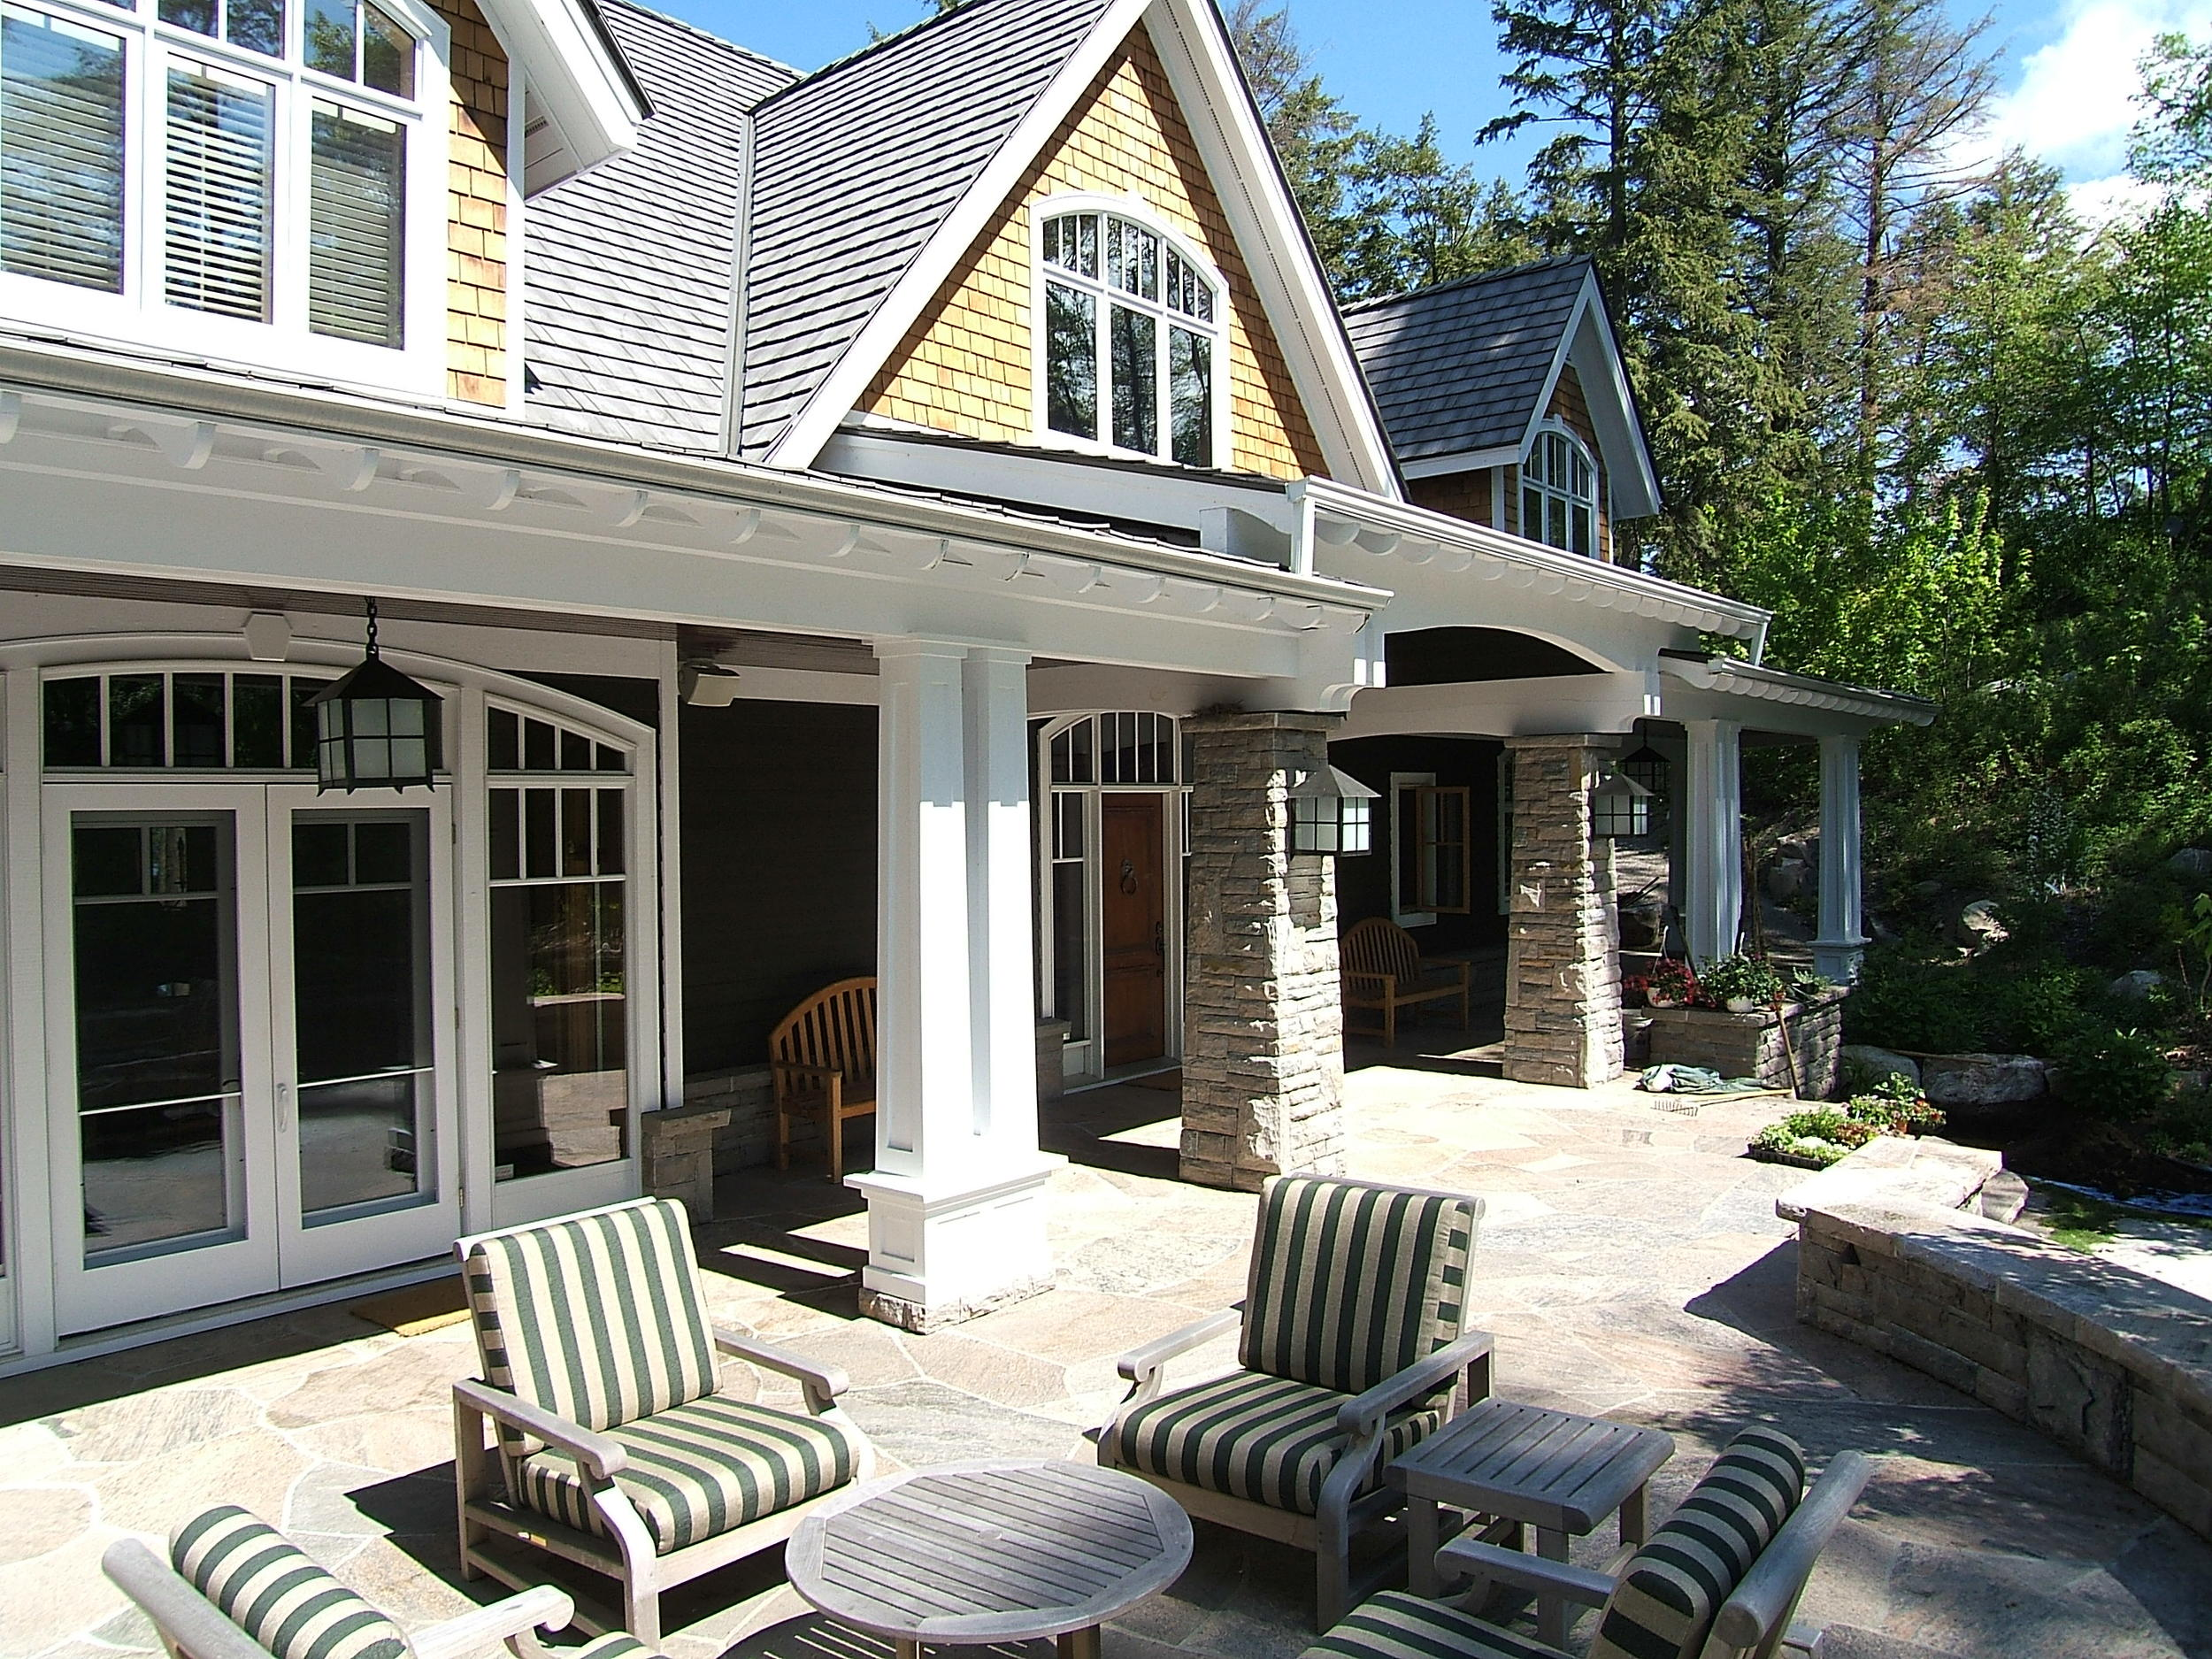 spacious backyard with patio chairs of a traditional house